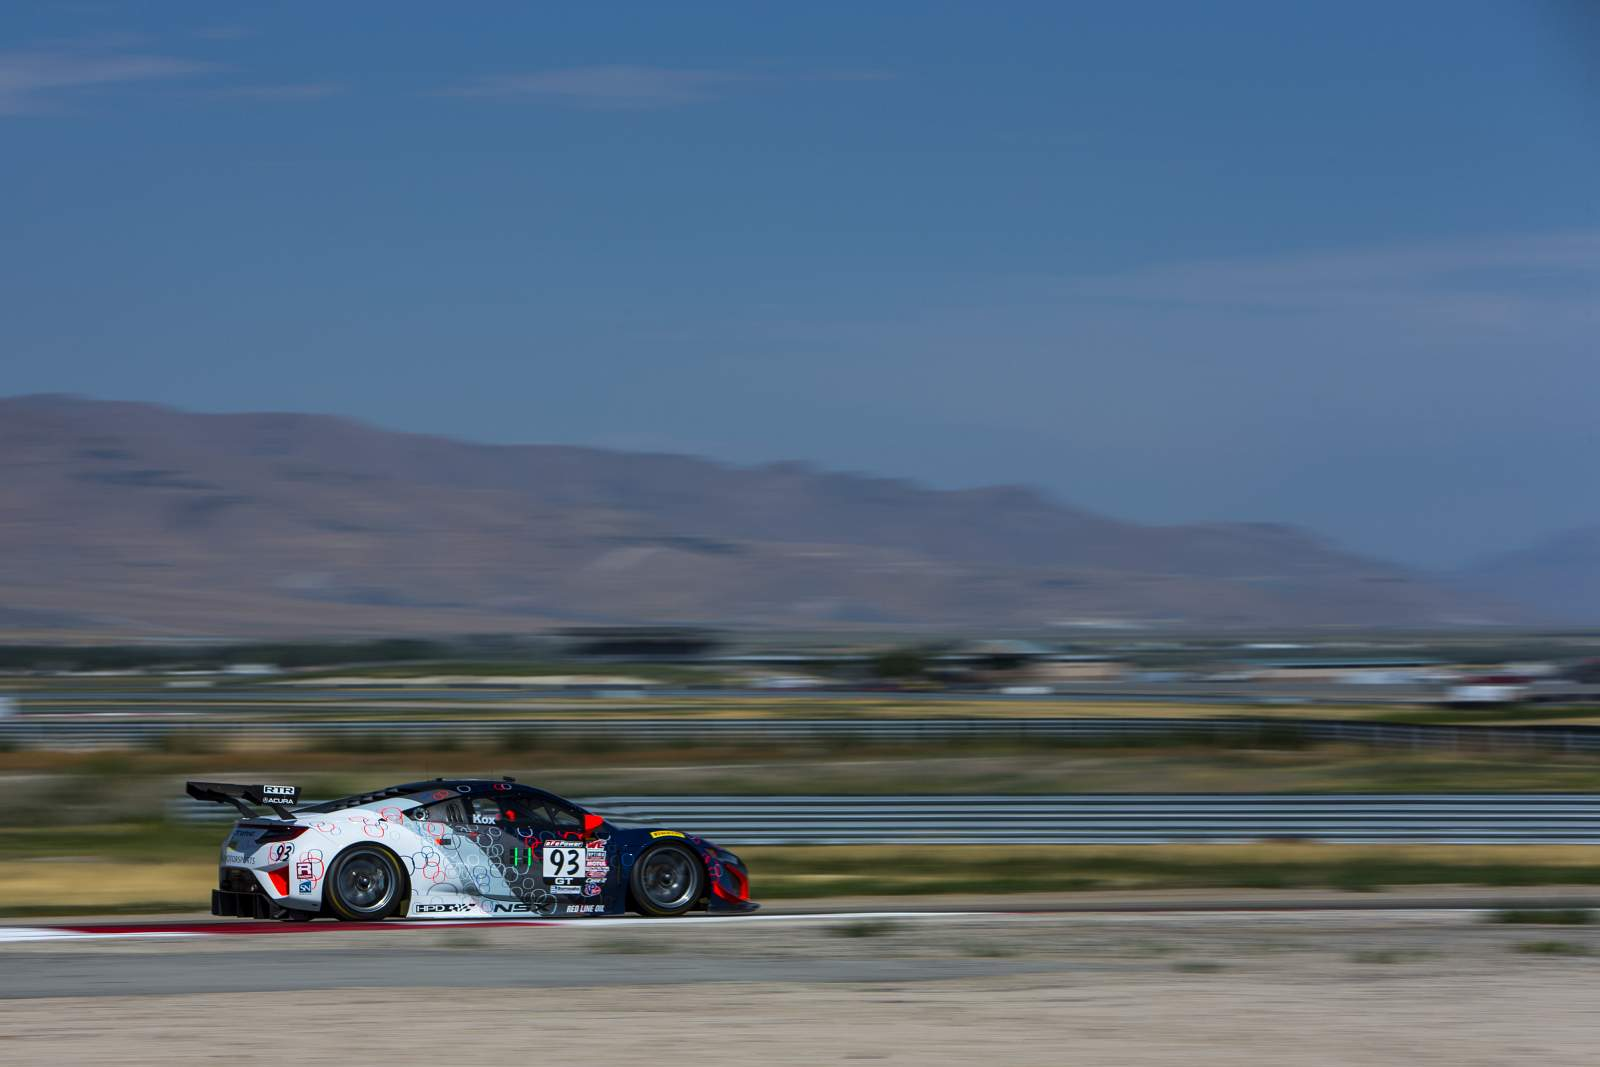 peter-kox-realtime-racing-pirelli-world-challenge-utah-motorsport-campus-28